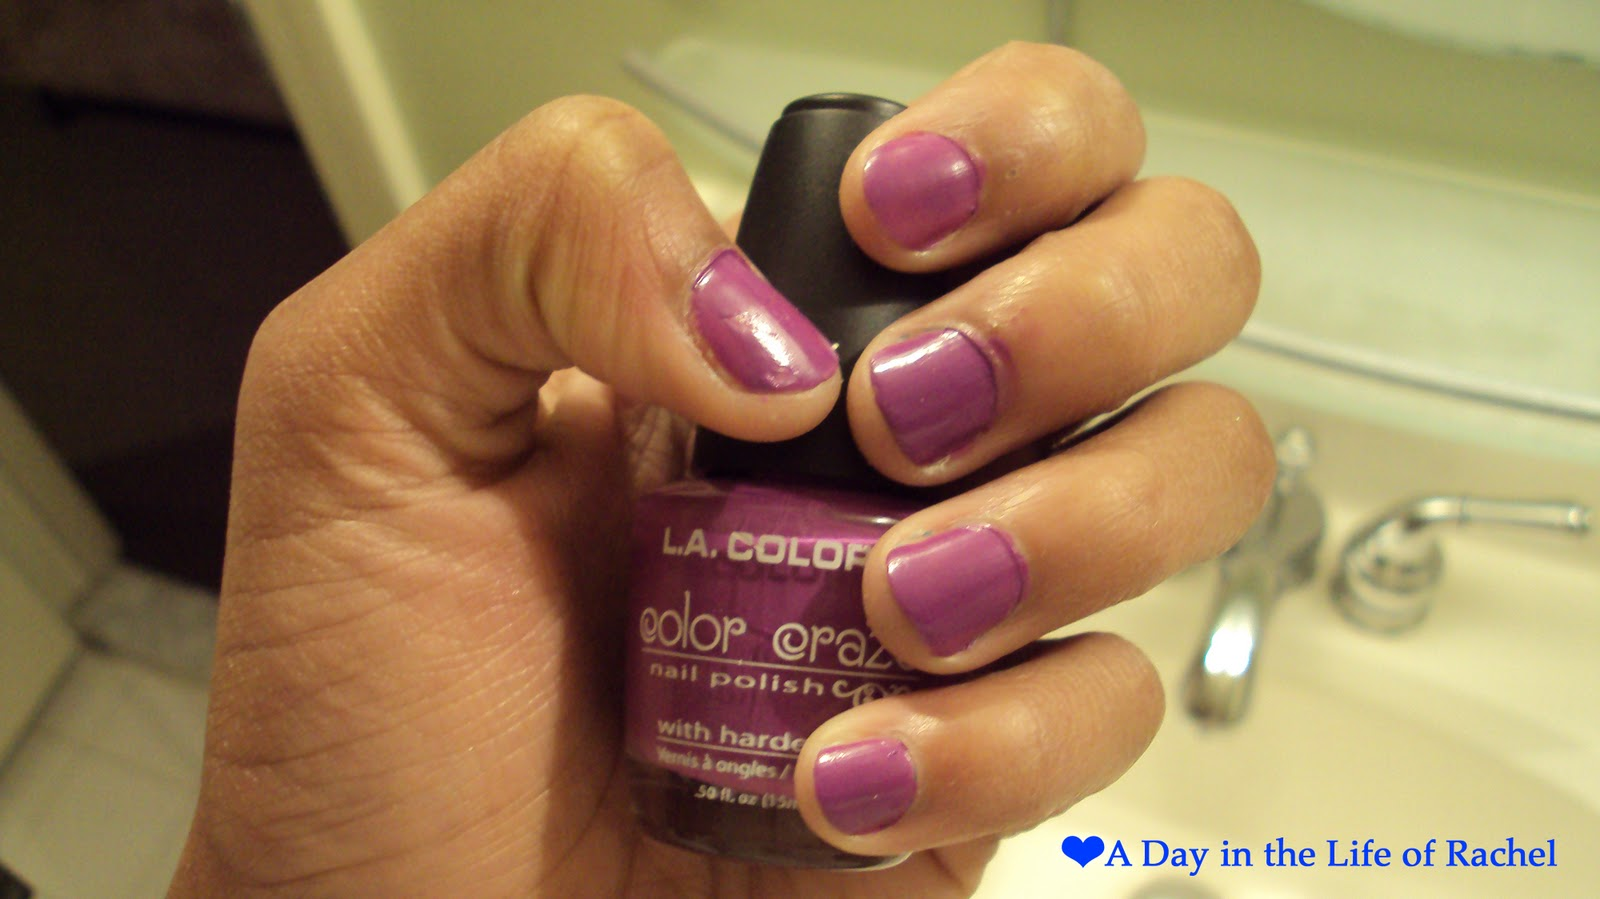 A Day in the Life Of Rachel: L.A. Colors Color Craze Nail Polish in ...